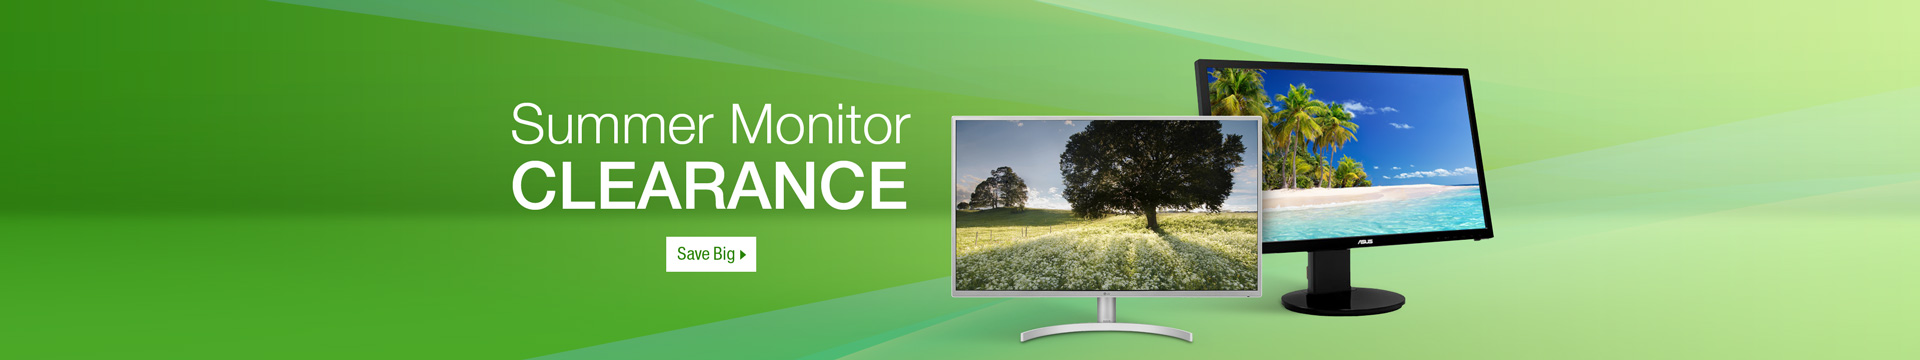 Summer Monitor clearance